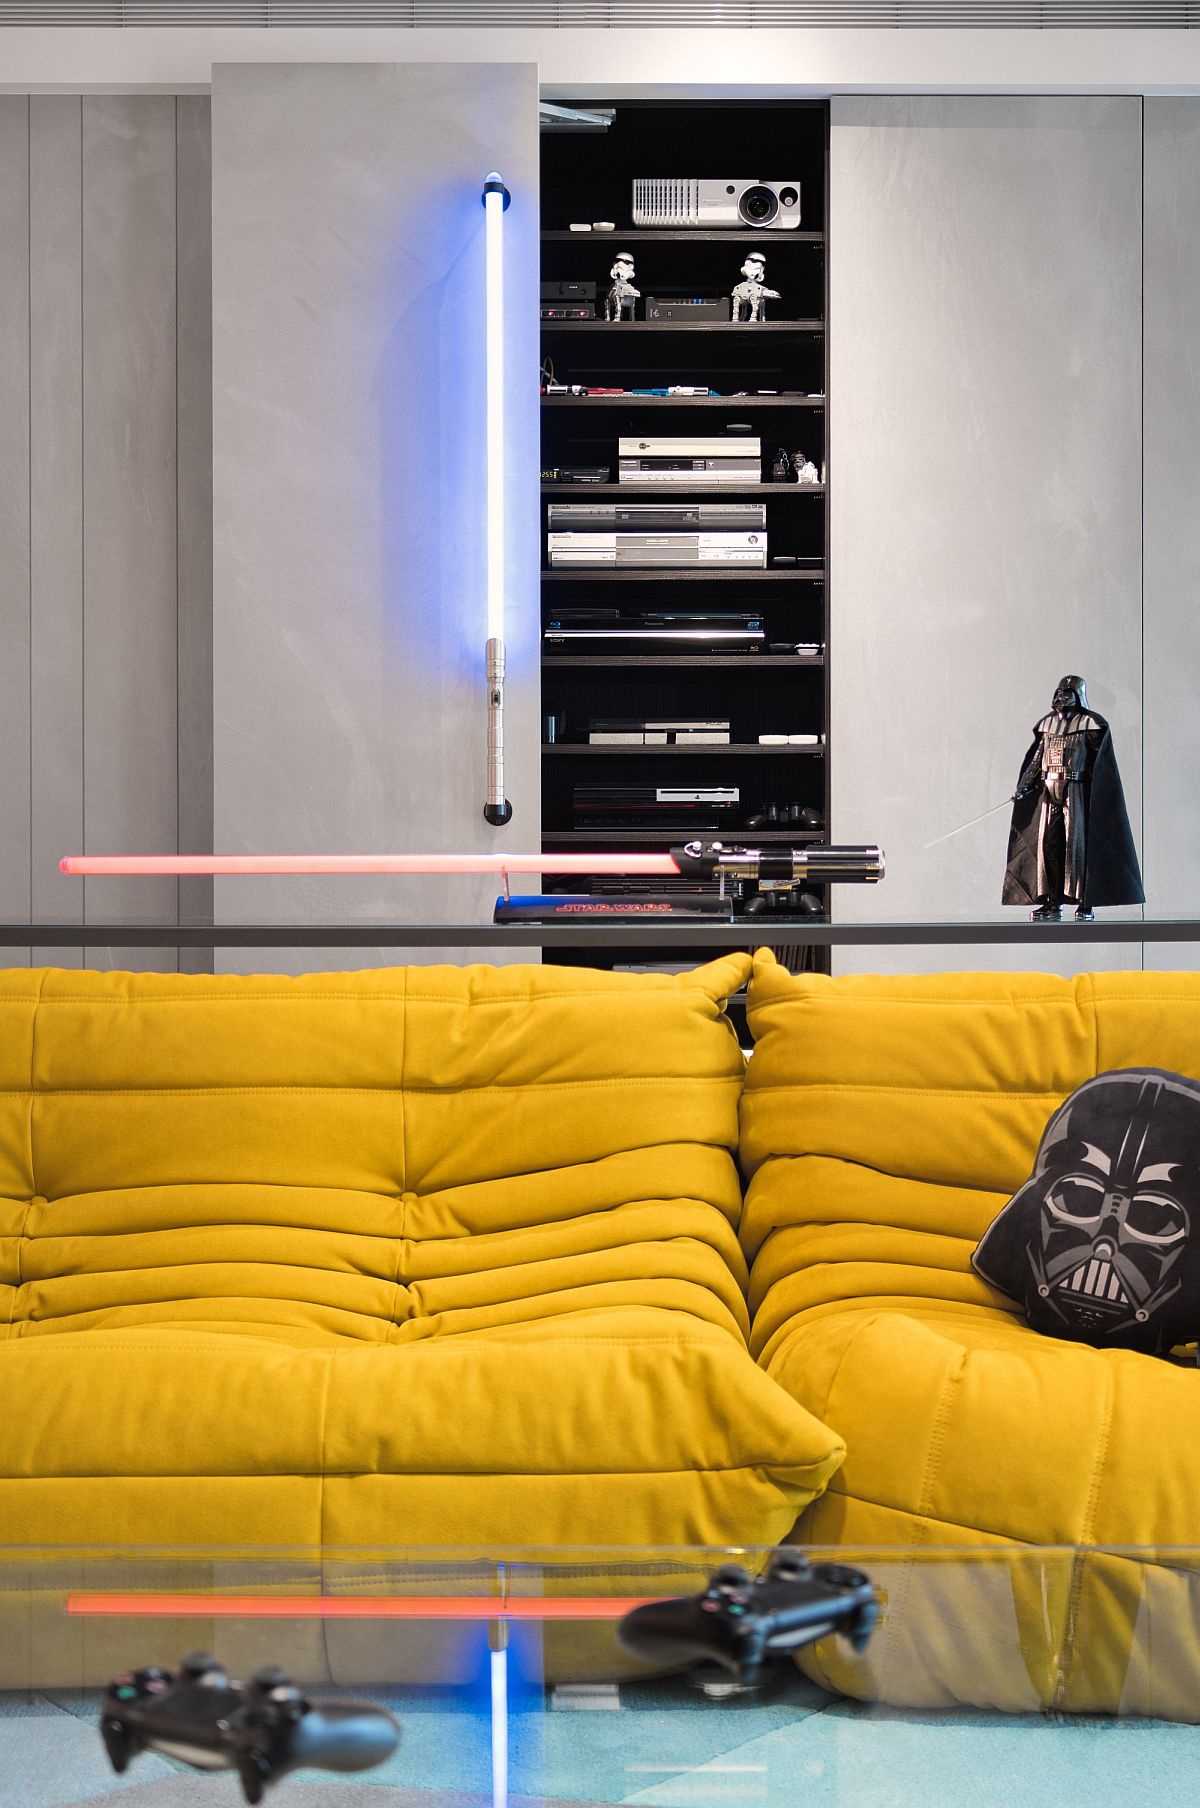 Darth Vader and light saber style lighting rules the living room of the Star Wars home